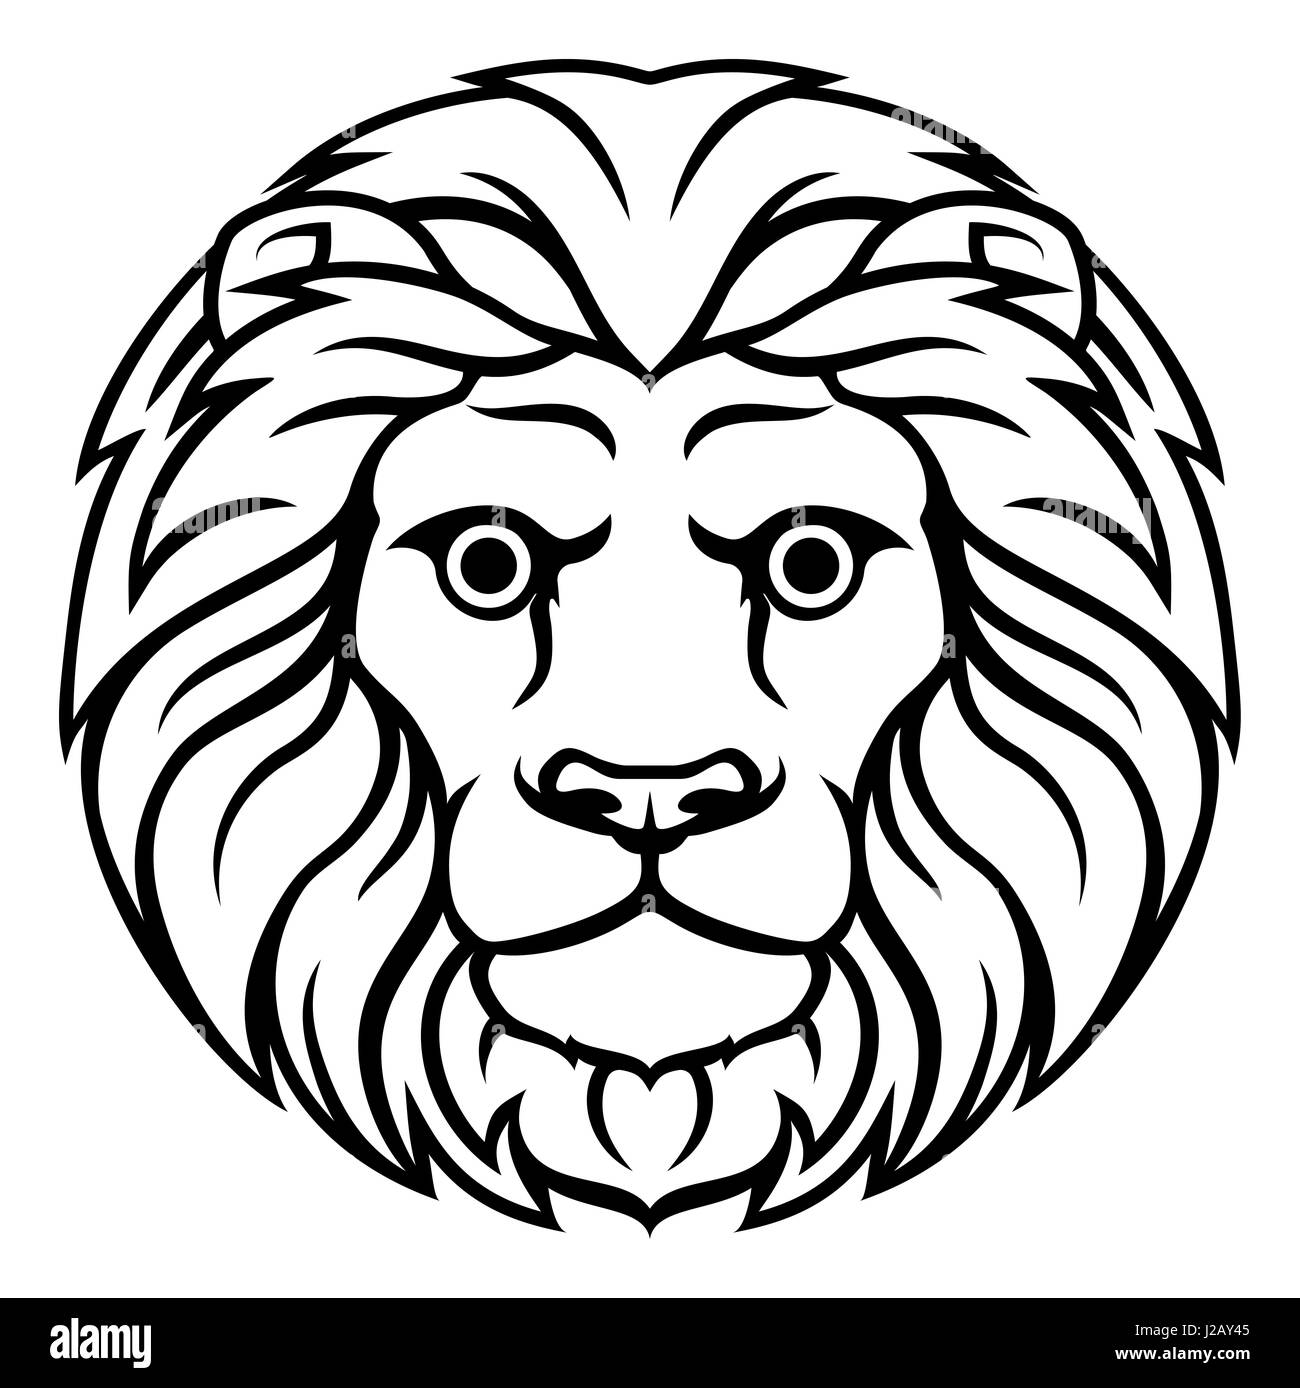 Astrology Horoscope Zodiac Signs Circular Leo Lion Symbol Stock